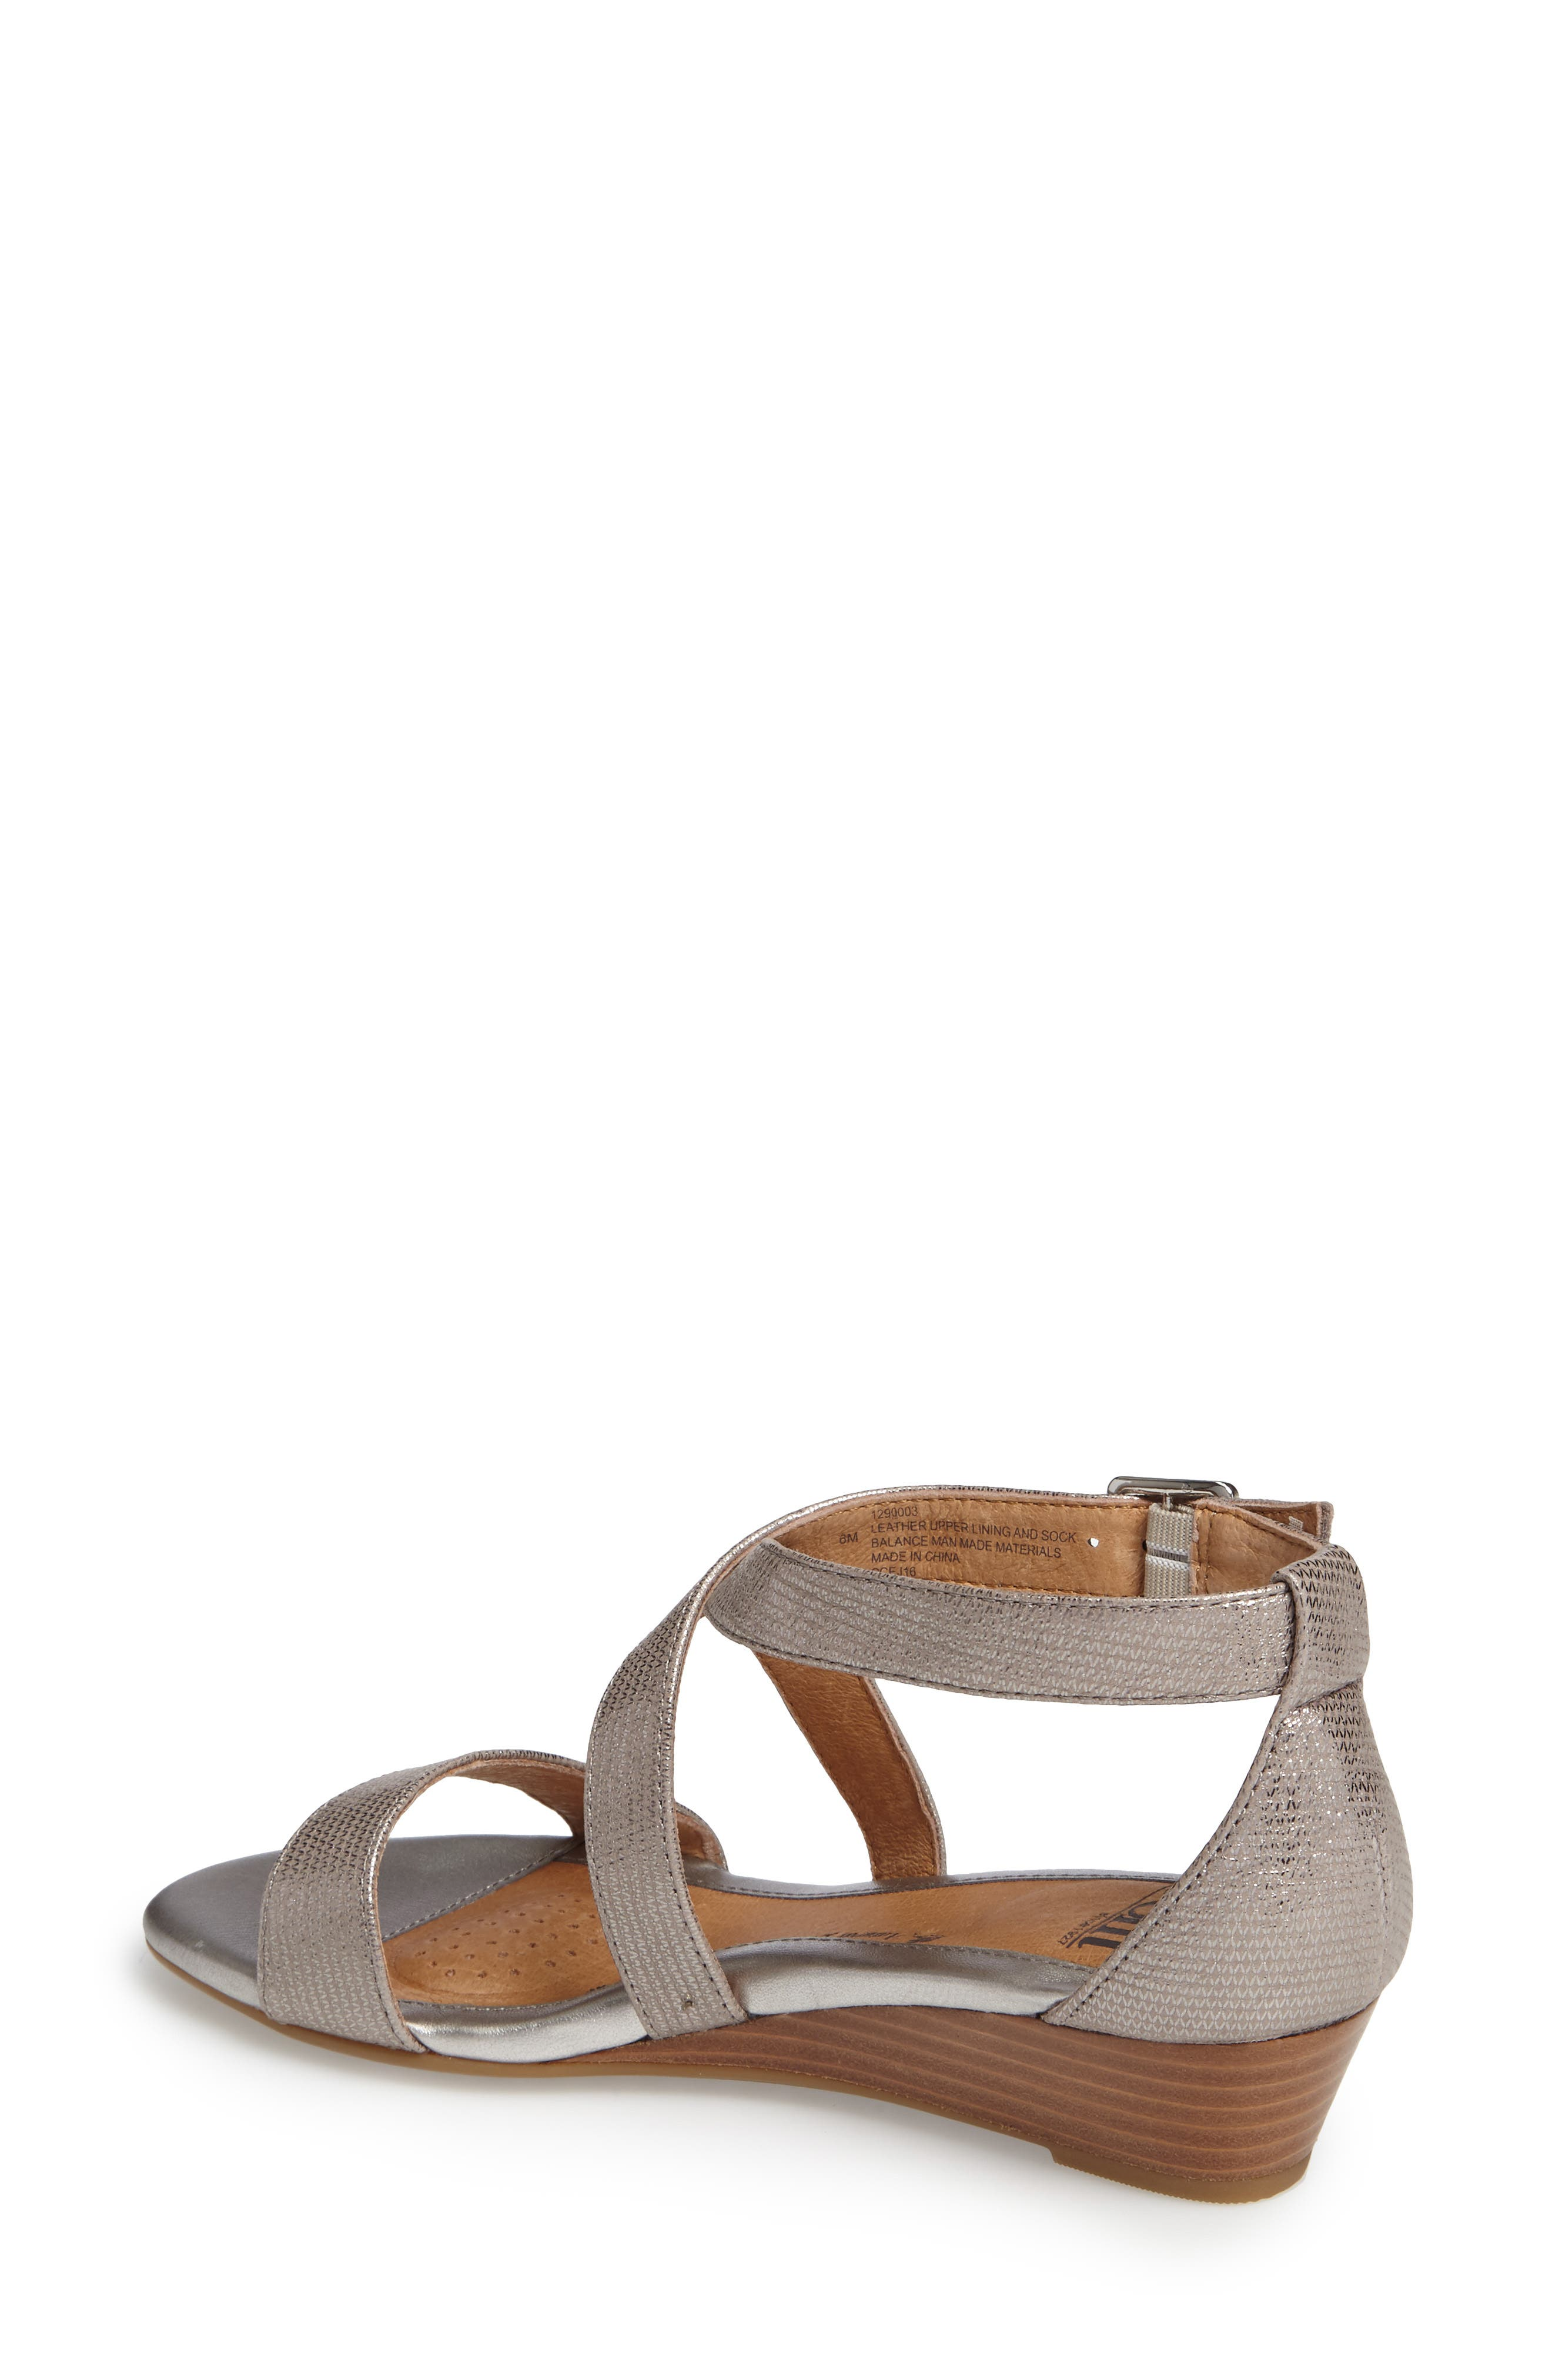 'Innis' Low Wedge Sandal,                             Alternate thumbnail 18, color,